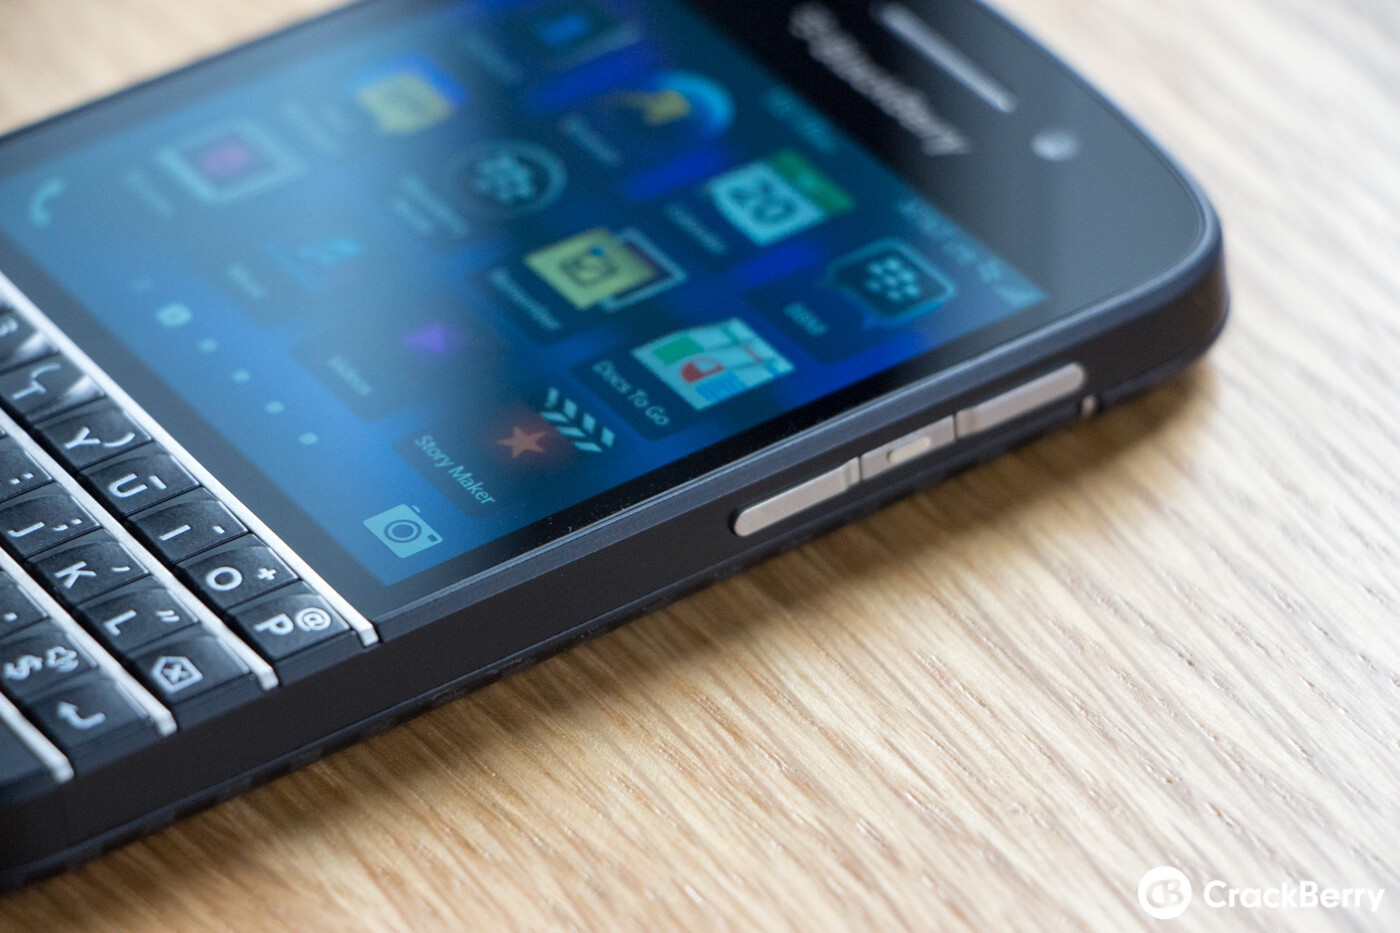 How to sideload Android applications to the BlackBerry Q10